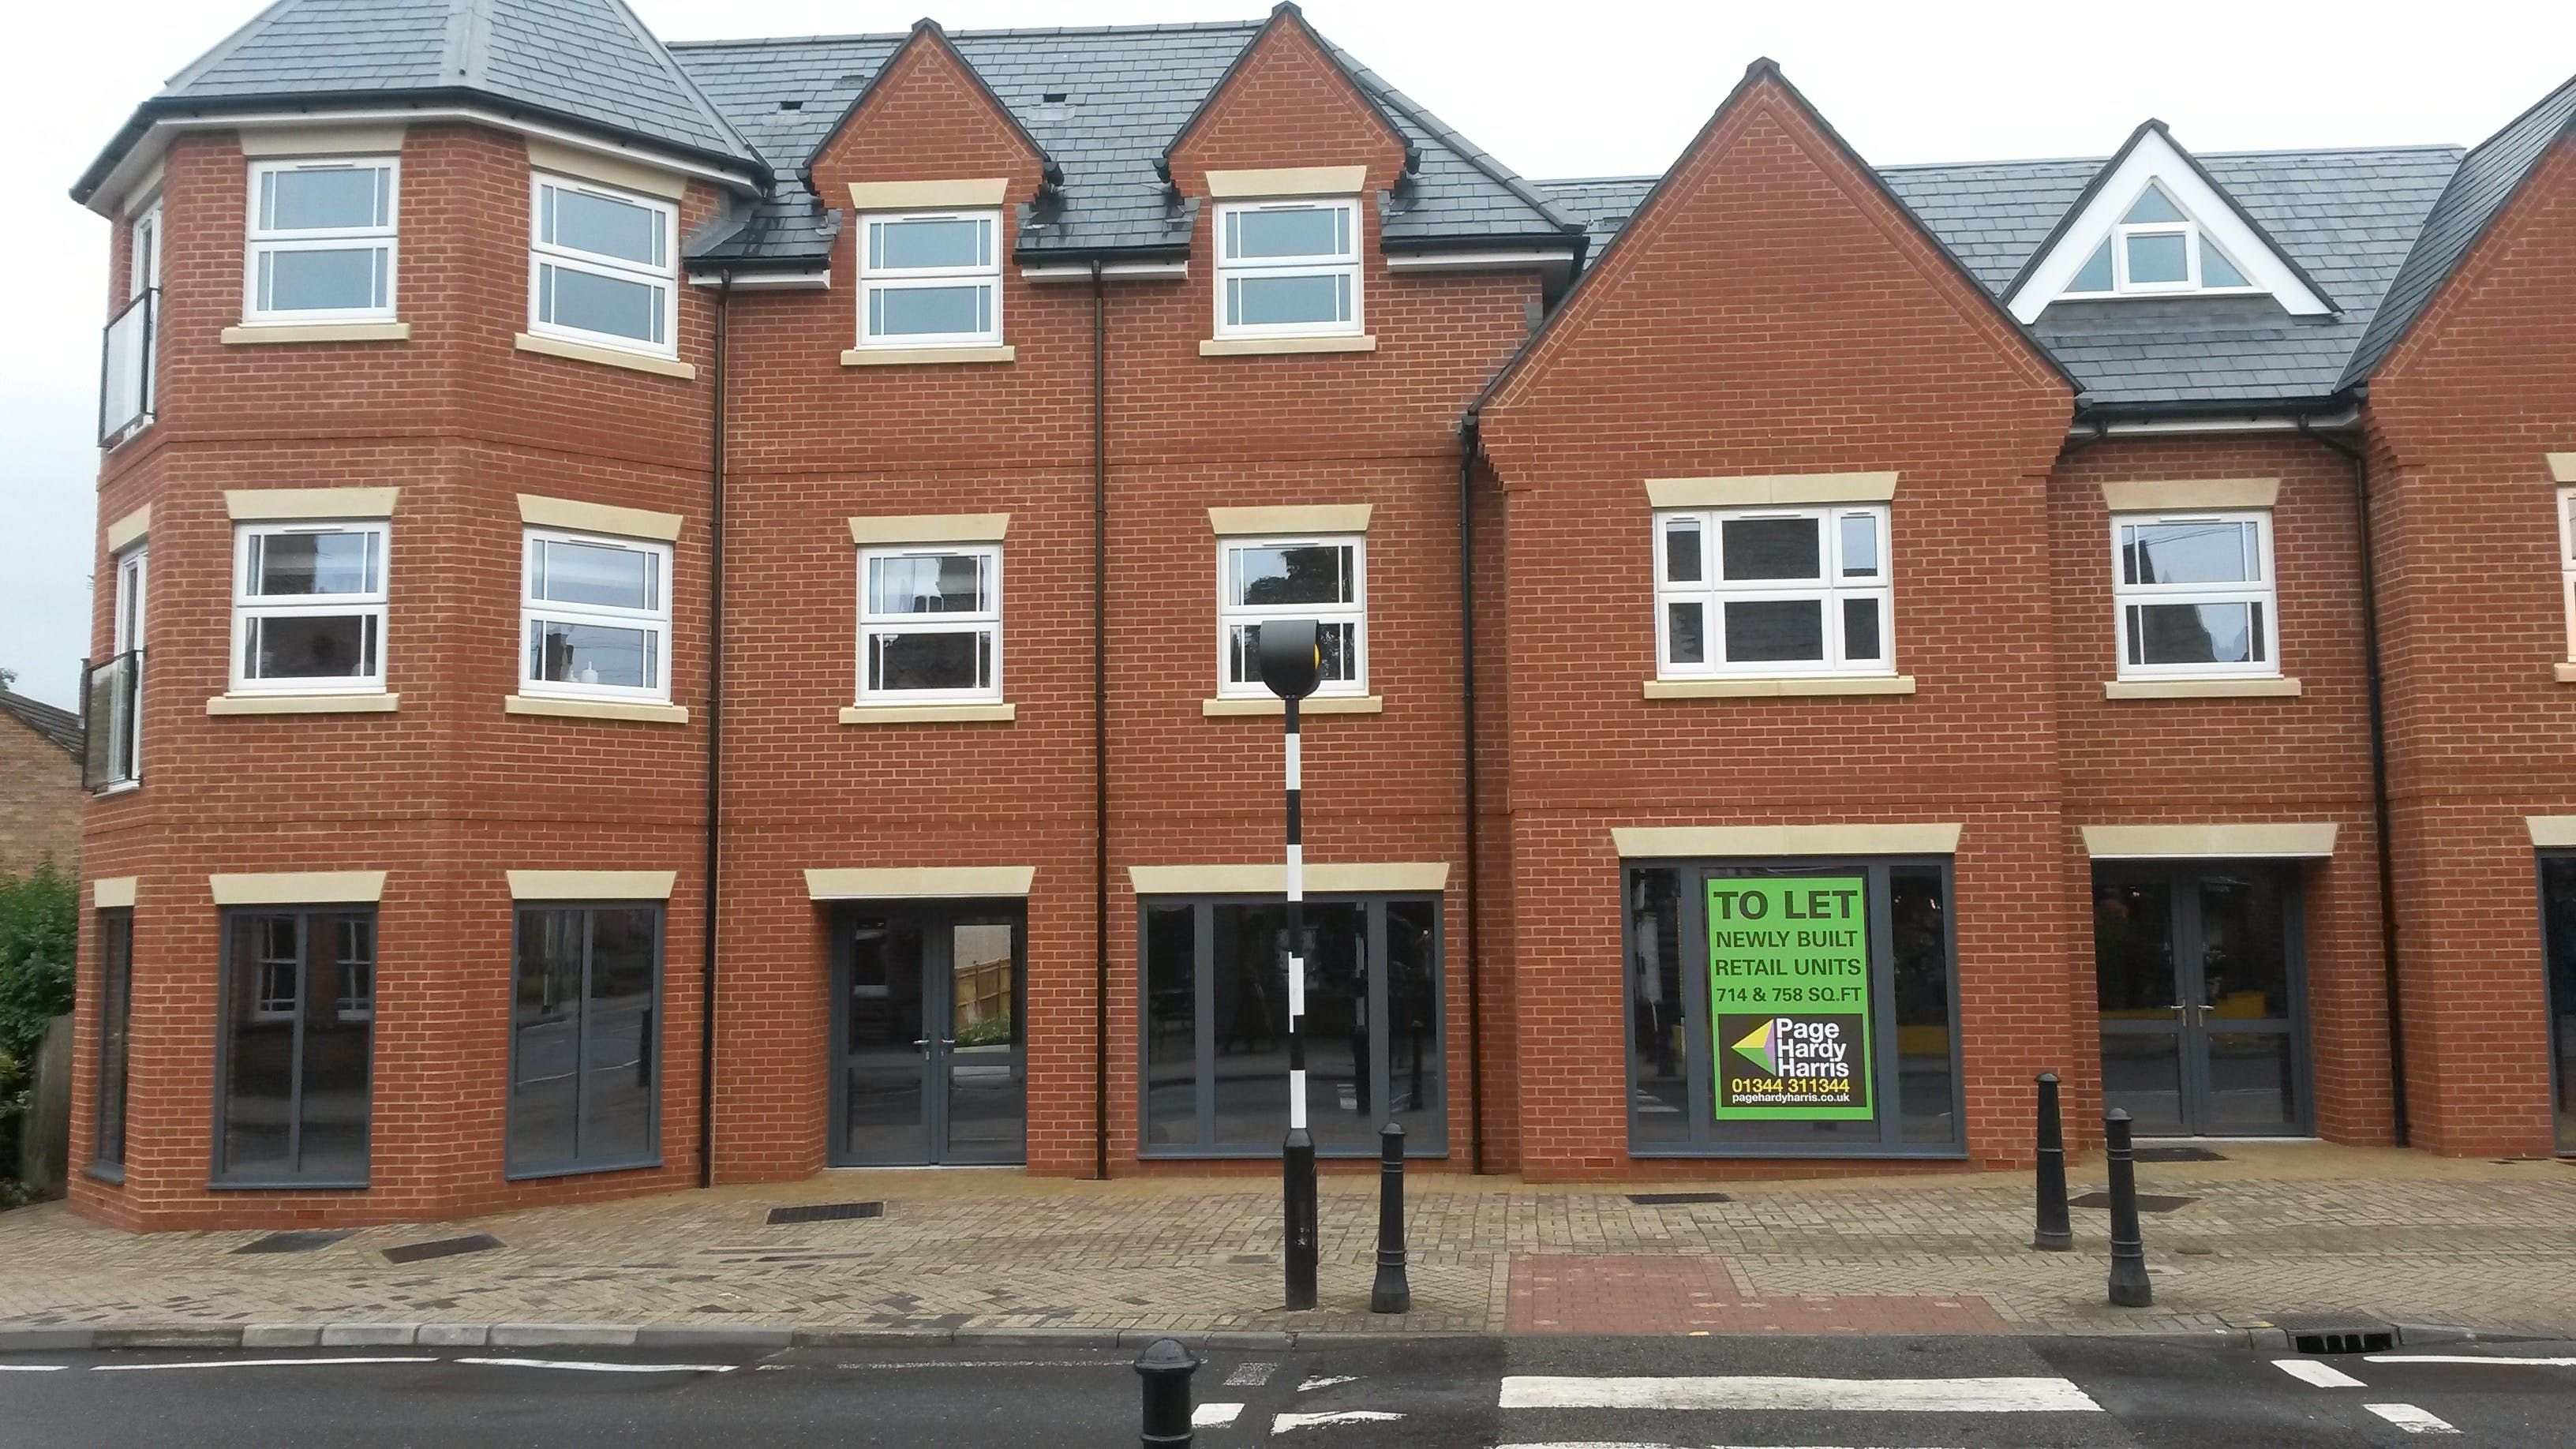 2 High Street, Crowthorne, Retail To Let / For Sale - 20180816_133003.jpg